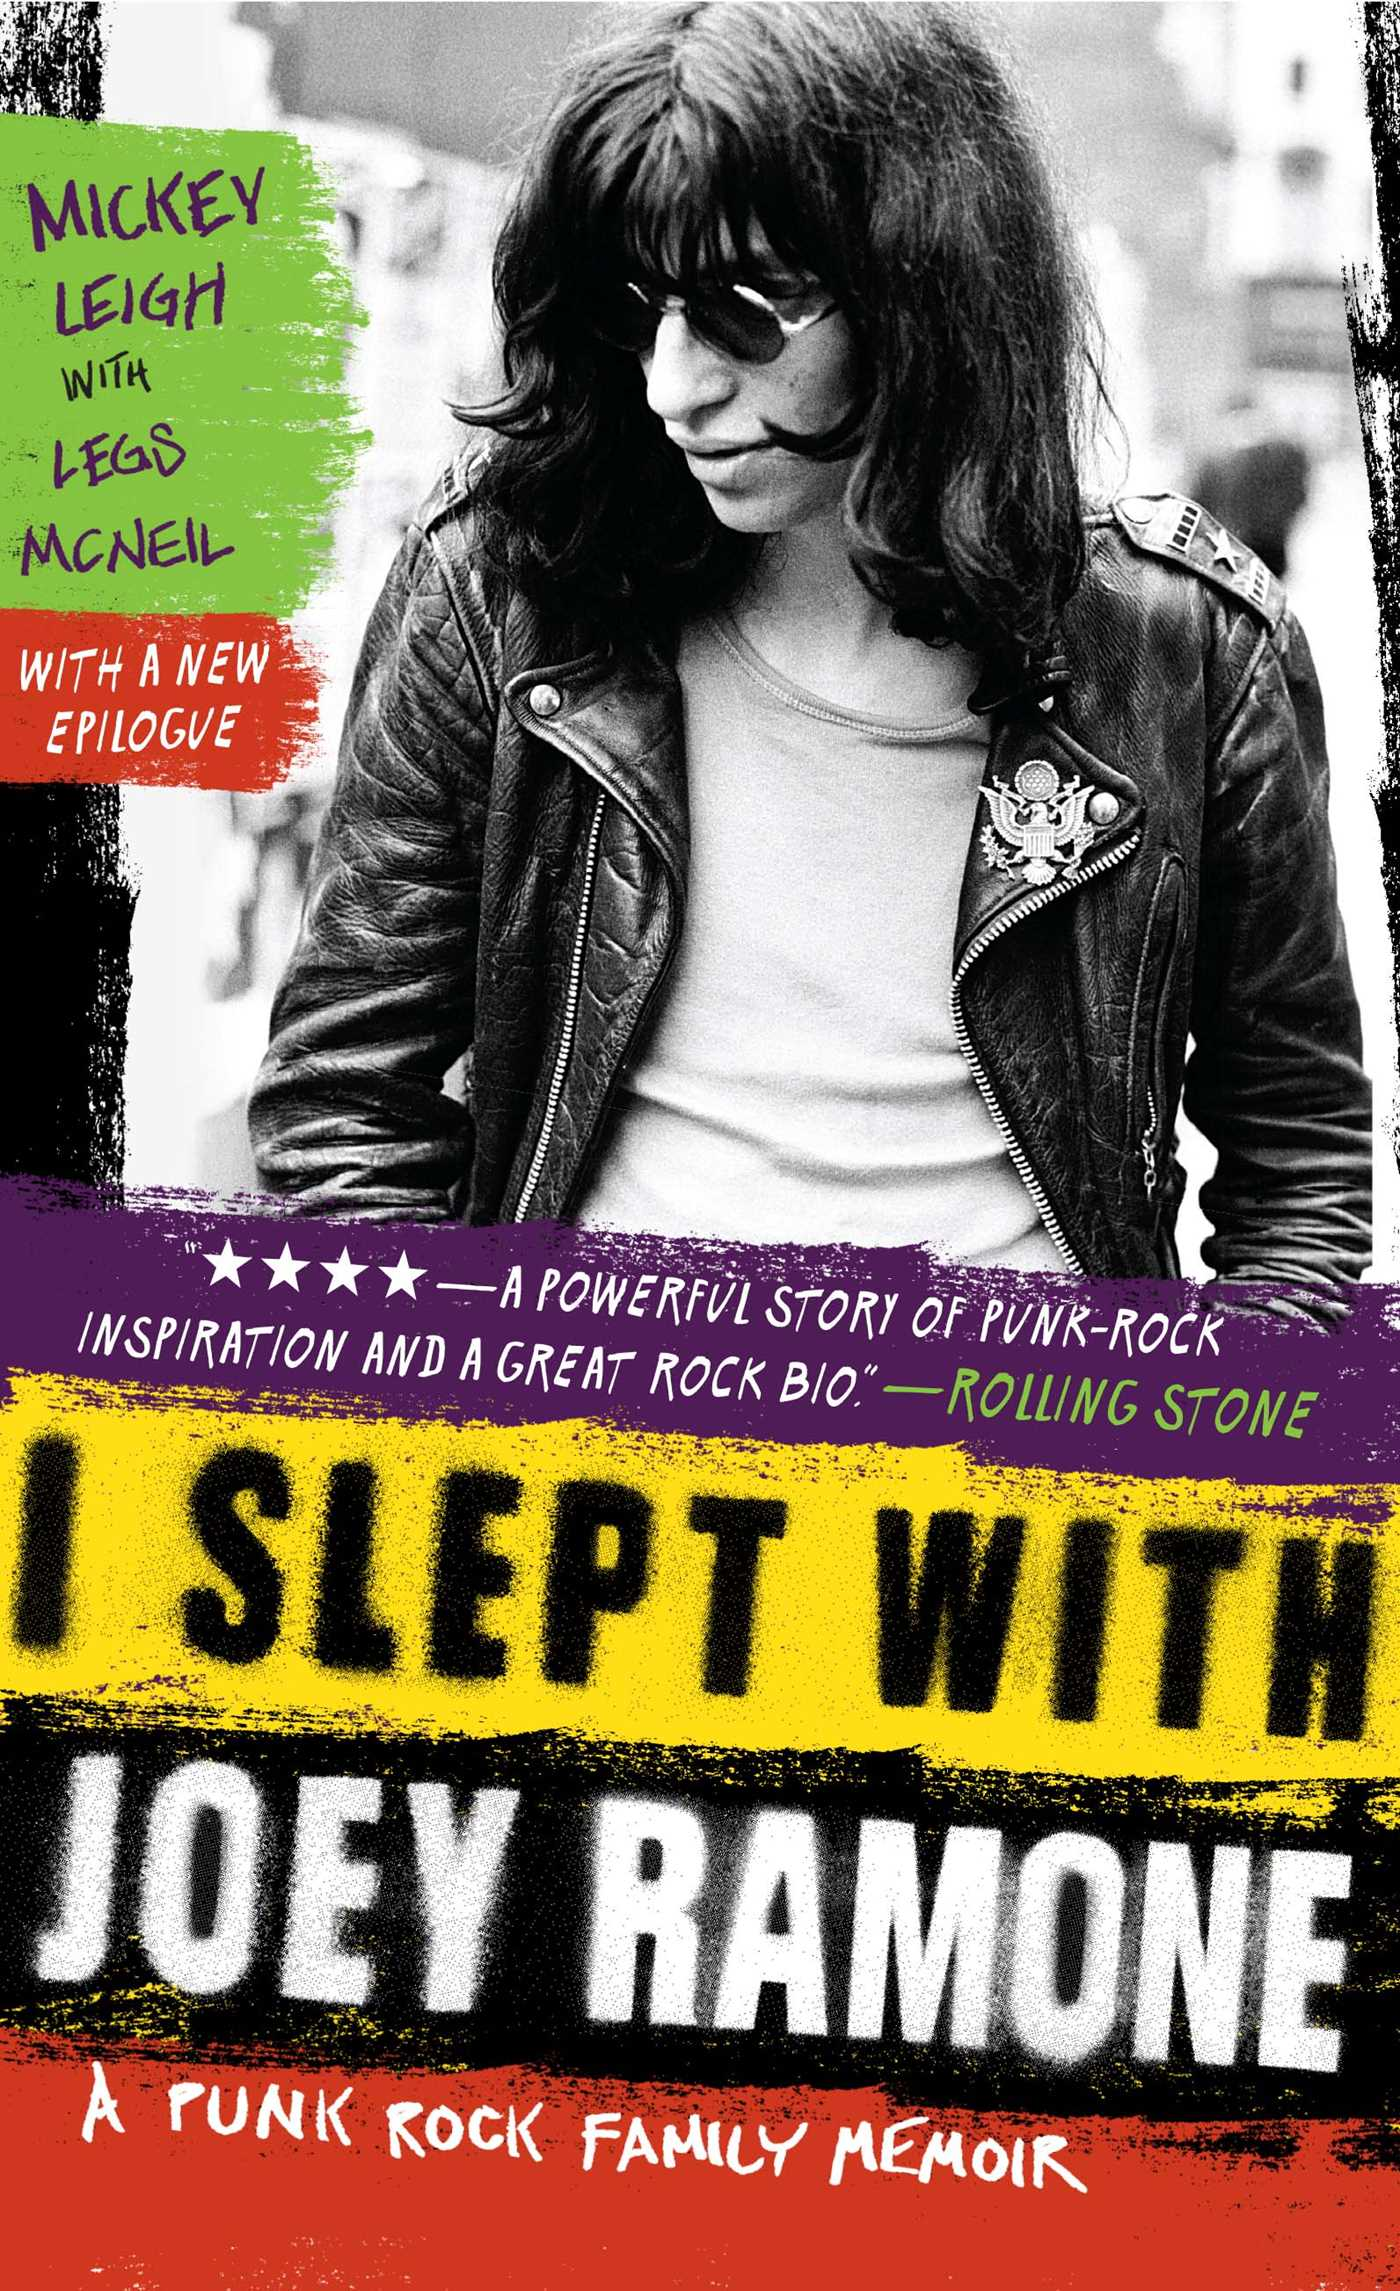 I-slept-with-joey-ramone-9781439159750_hr